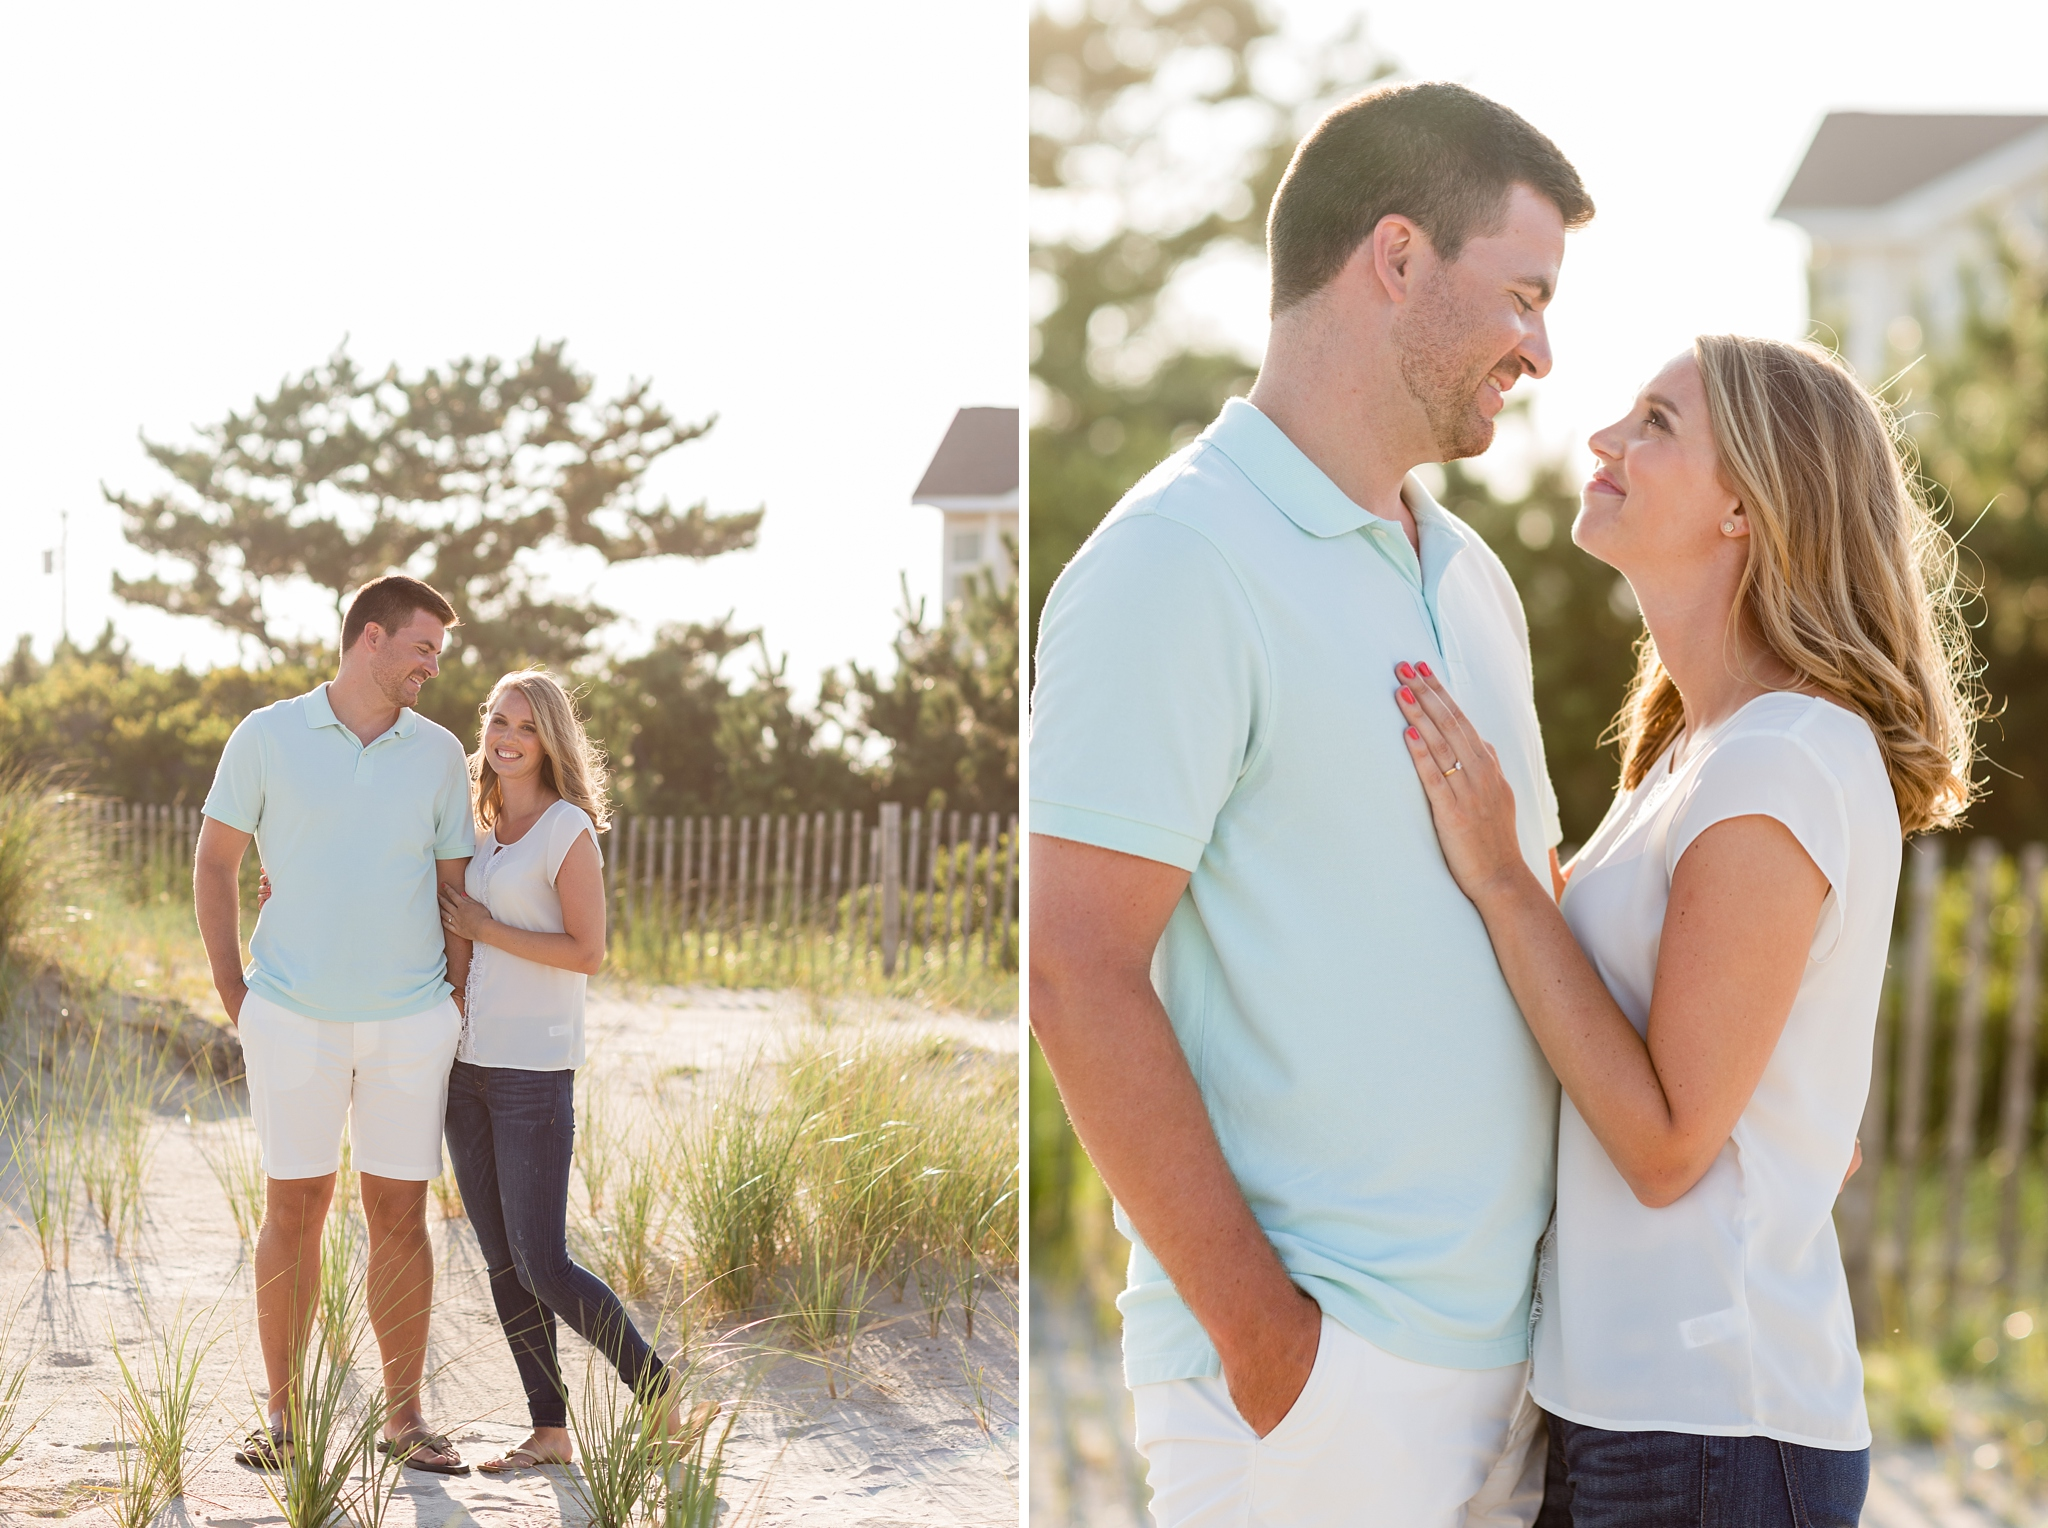 Sea_Isle_City_NJ_Beach_Engagement_Session_02.jpg